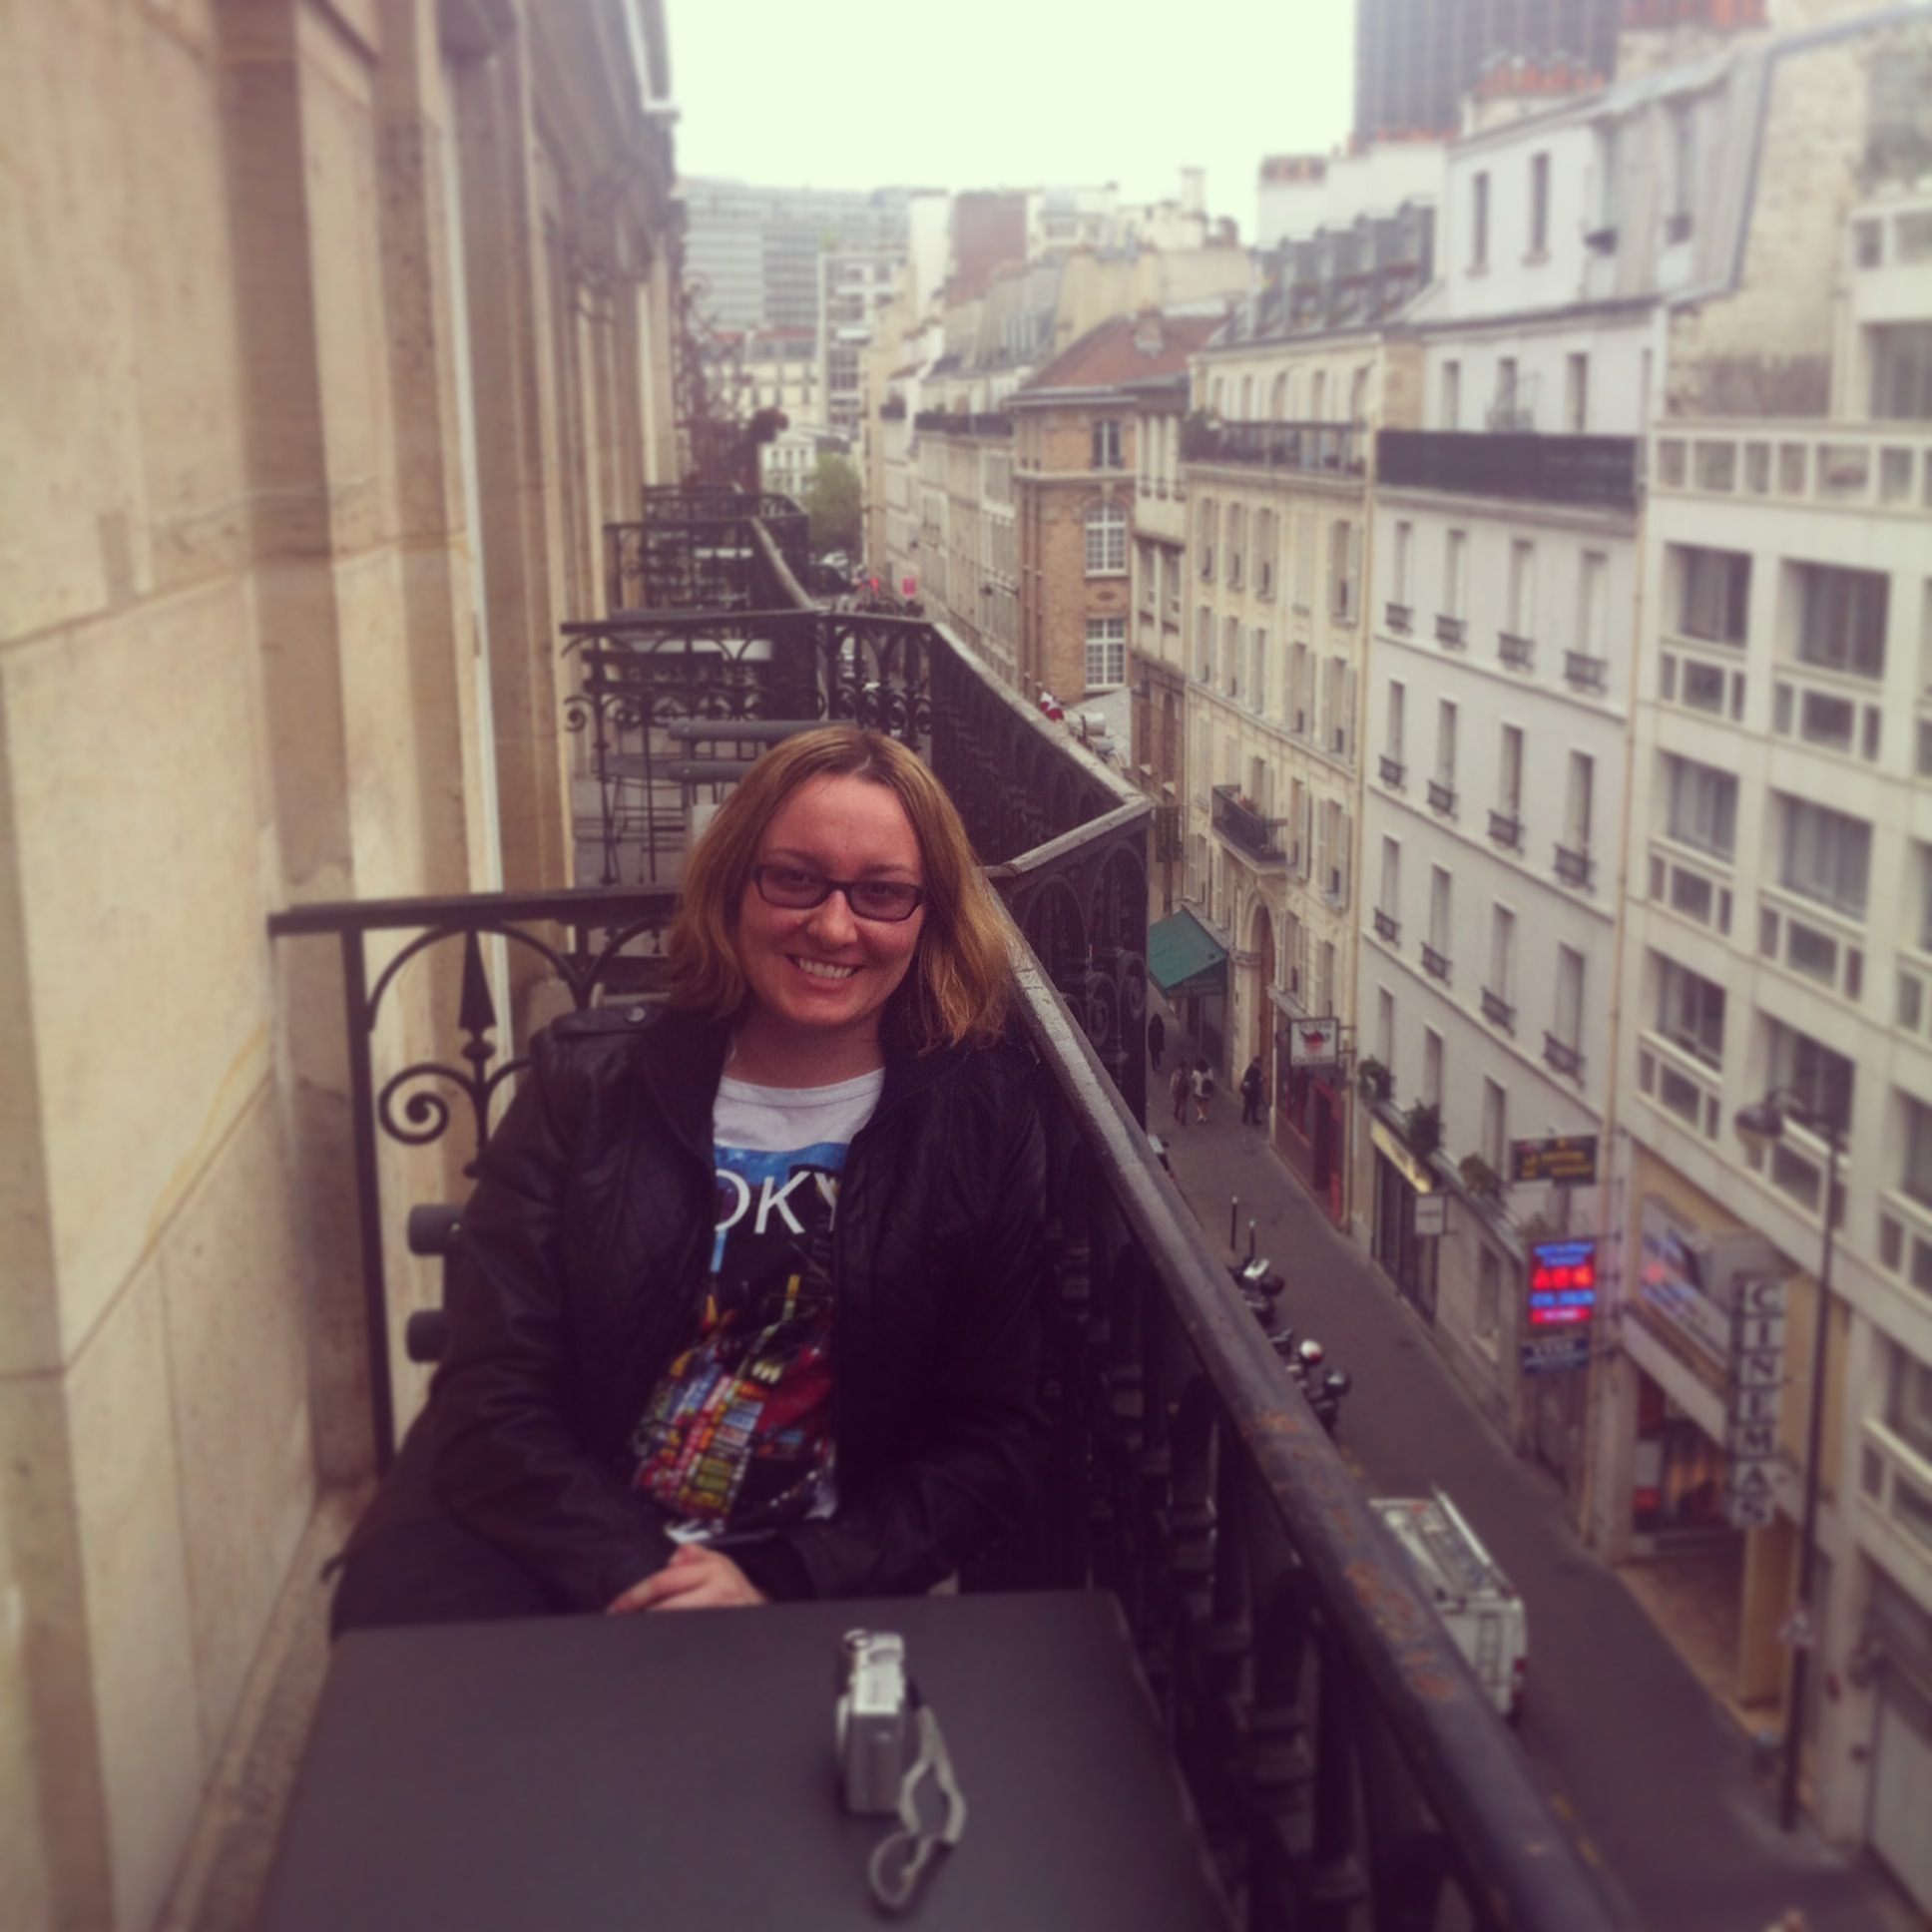 On our balcony at the Lenox Montparnesse hotel in Paris.